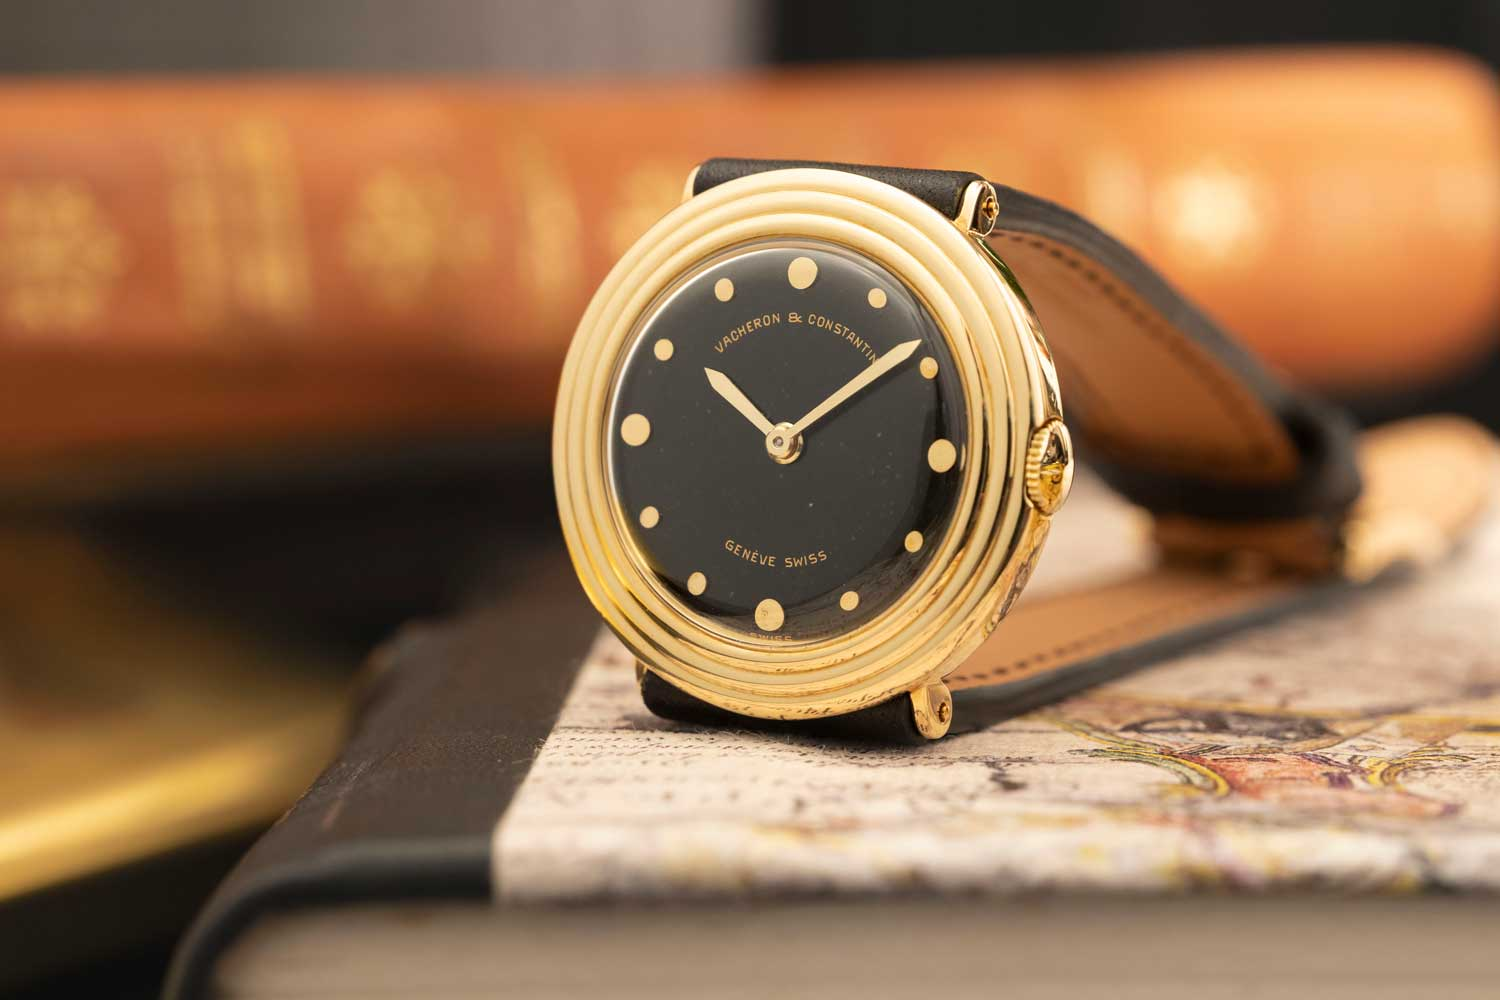 """1948: Altesse Reference 3681 30mm in diameter; 18K yellow gold round-shaped wristwatch; Gadrooned bezel; black """"Duco"""" laquered dial, 12 dots in yellow gold, larger at 3, 6, 9, and 12 o'clock; gilt signatures in a form of an arc """"Vacheron & Constantin"""" at 12 o'clock, and """"Genève Swiss"""" at 6 o'clock. Sword-shaped hands in yellow gold (©Revolution)"""